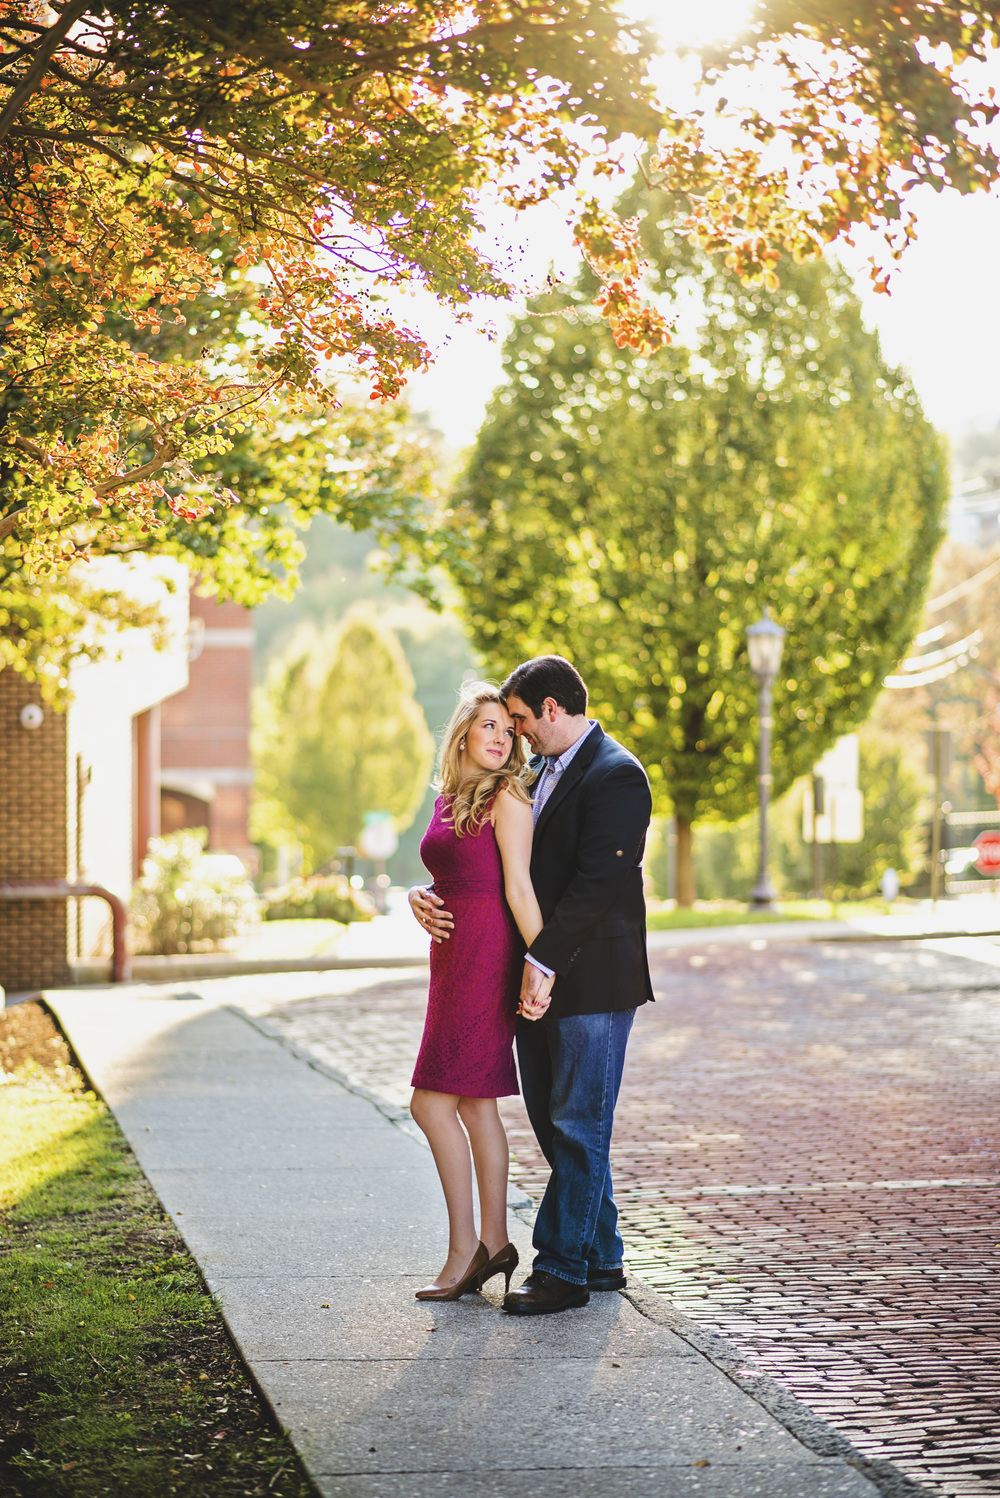 bookstore_fairytale_downtown_engagement_session_lynchburg_va022.jpg